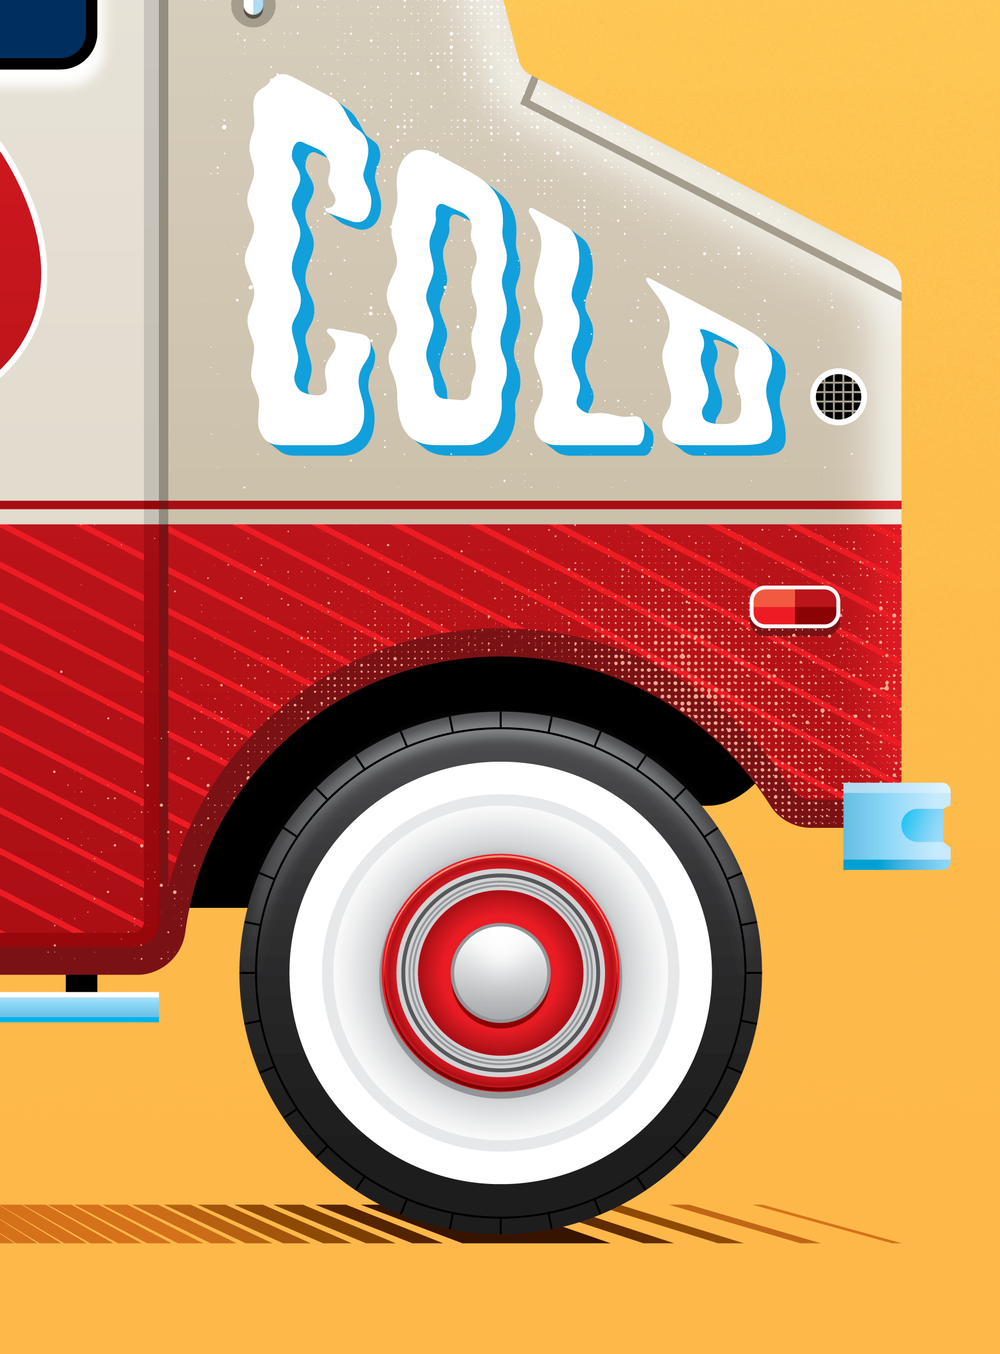 ice-cream-truck-cold-wheel.png